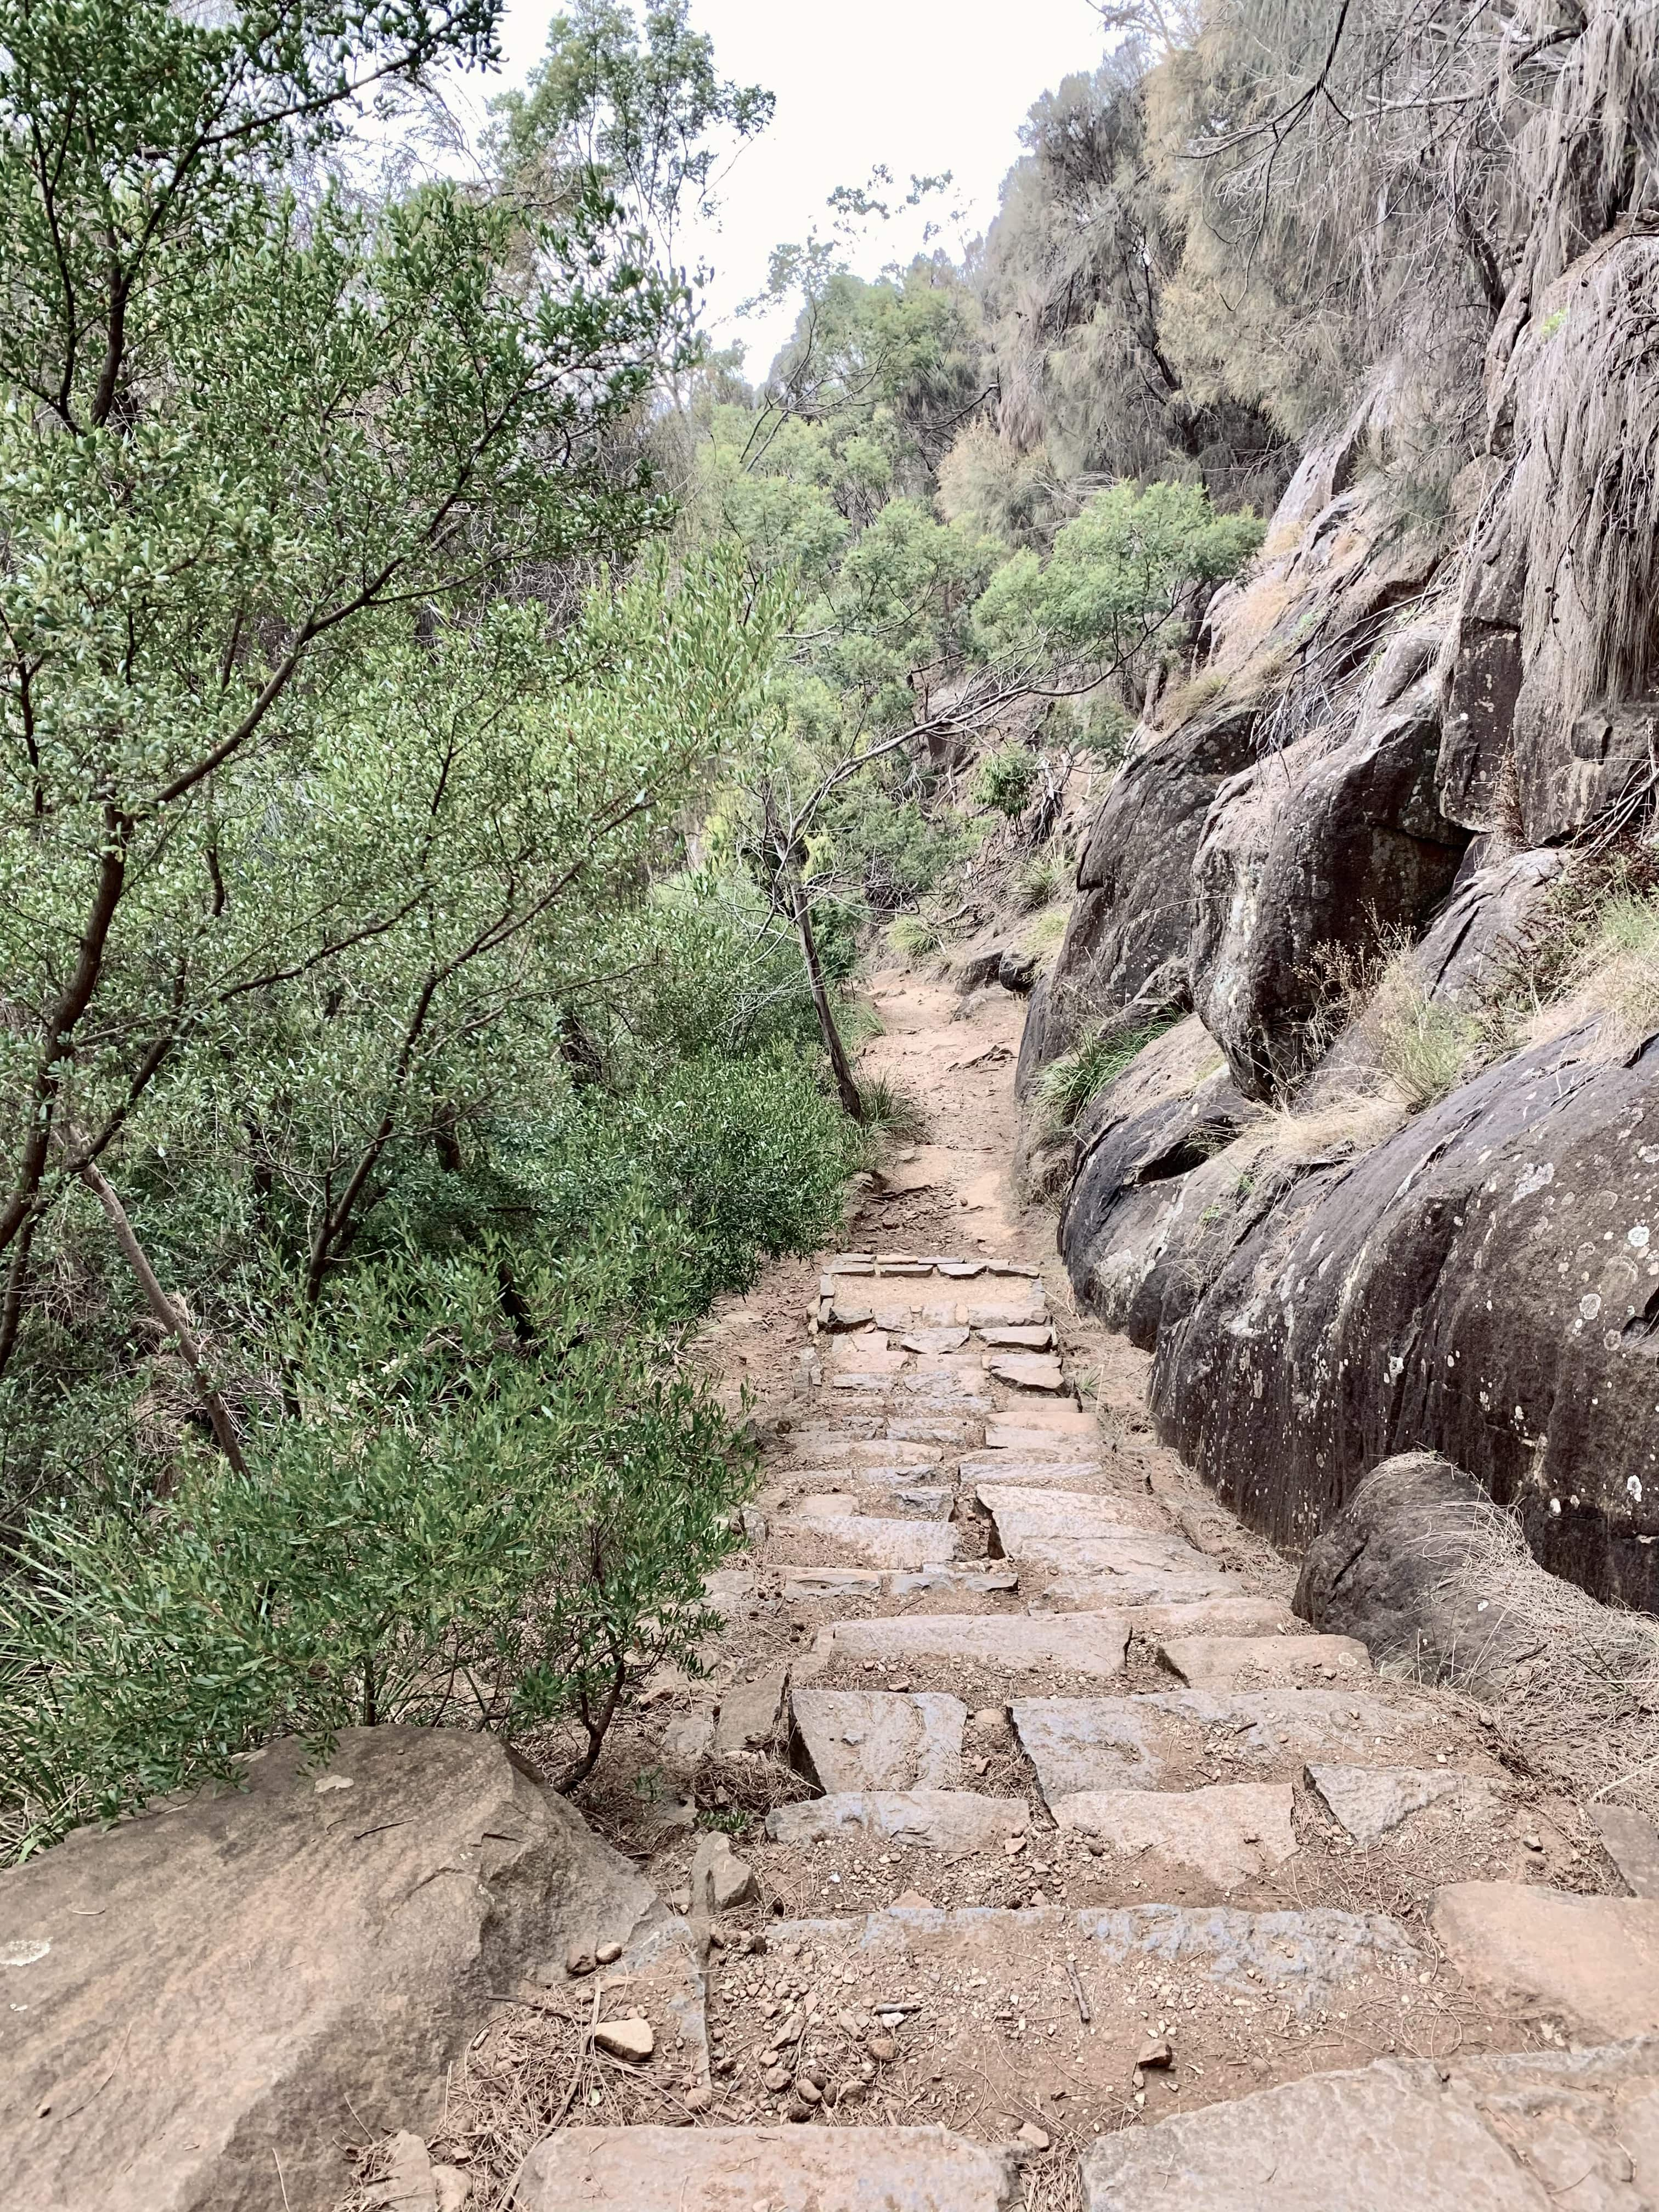 Zig Zag Trail in the Cataract Gorge in Launceston, Tasmania